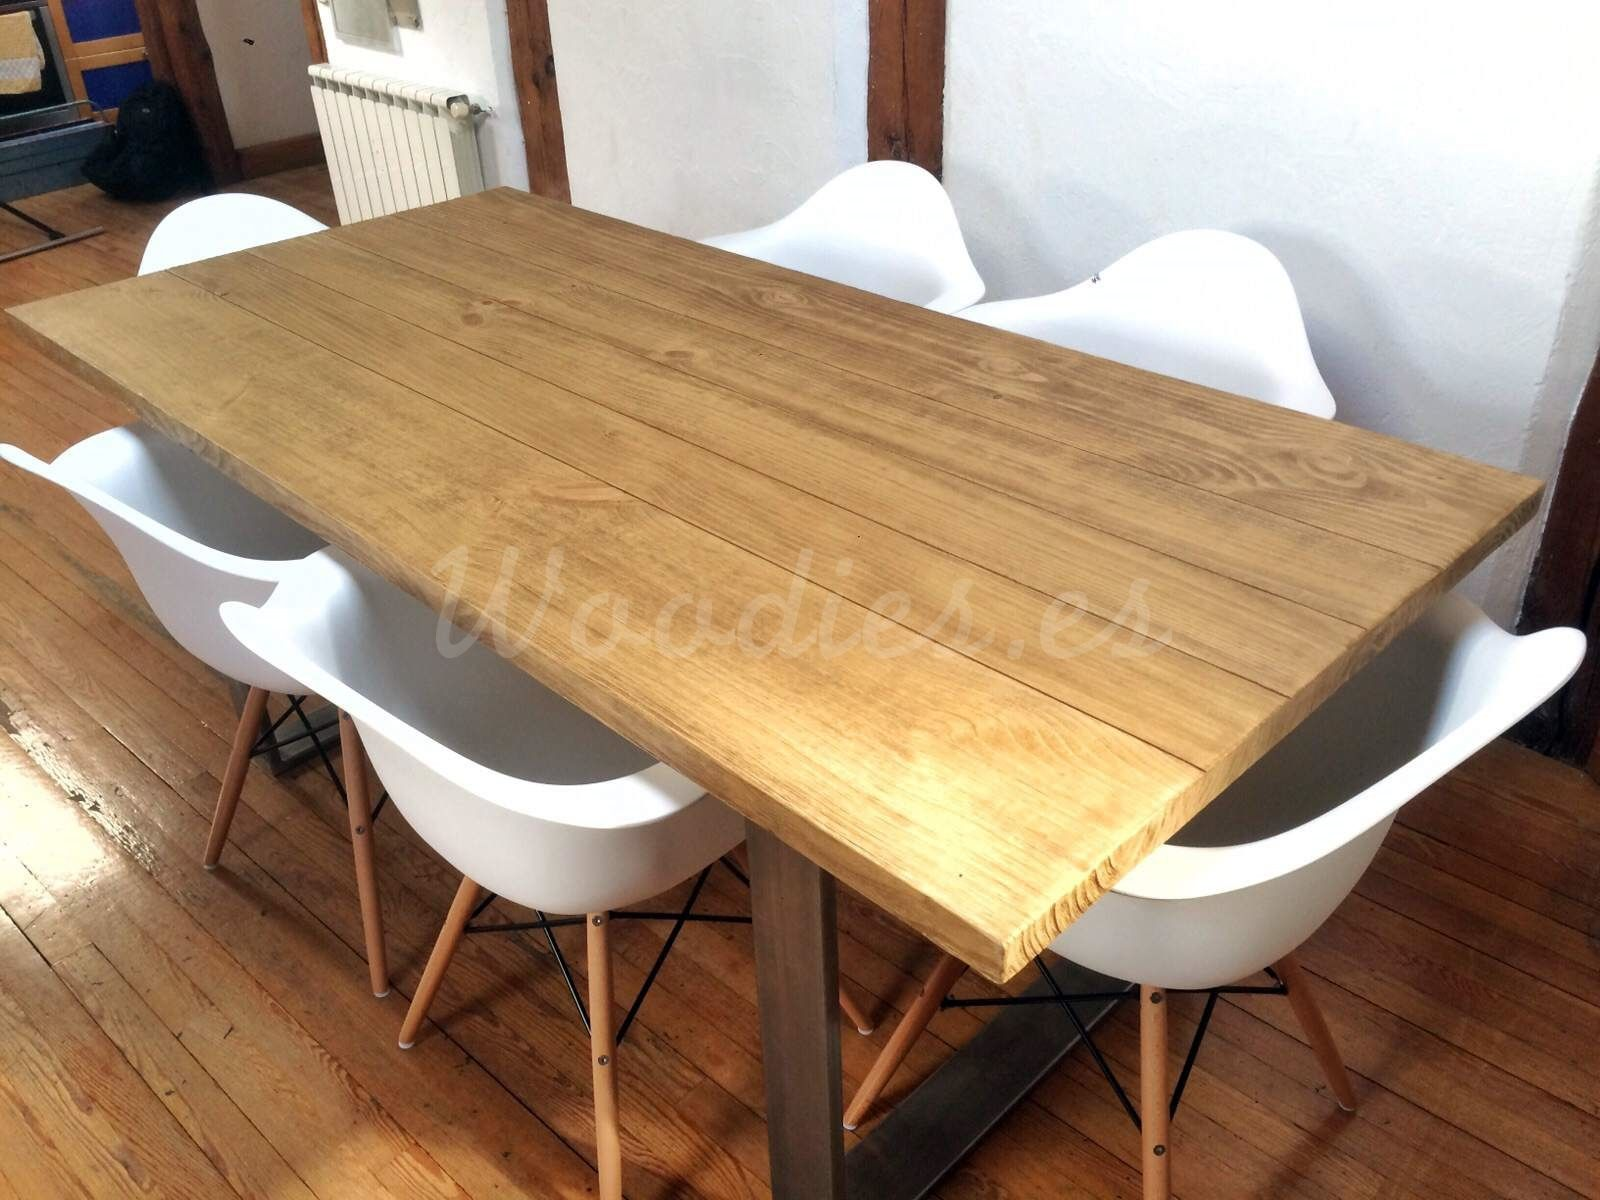 Muebles Woodies - Mesa Comedor Industrial Mesas Woodies Deco Salon Pinterest [mjhdah]https://i.pinimg.com/originals/e0/6c/7b/e06c7b5d6f45a91a738c21603185a91d.jpg